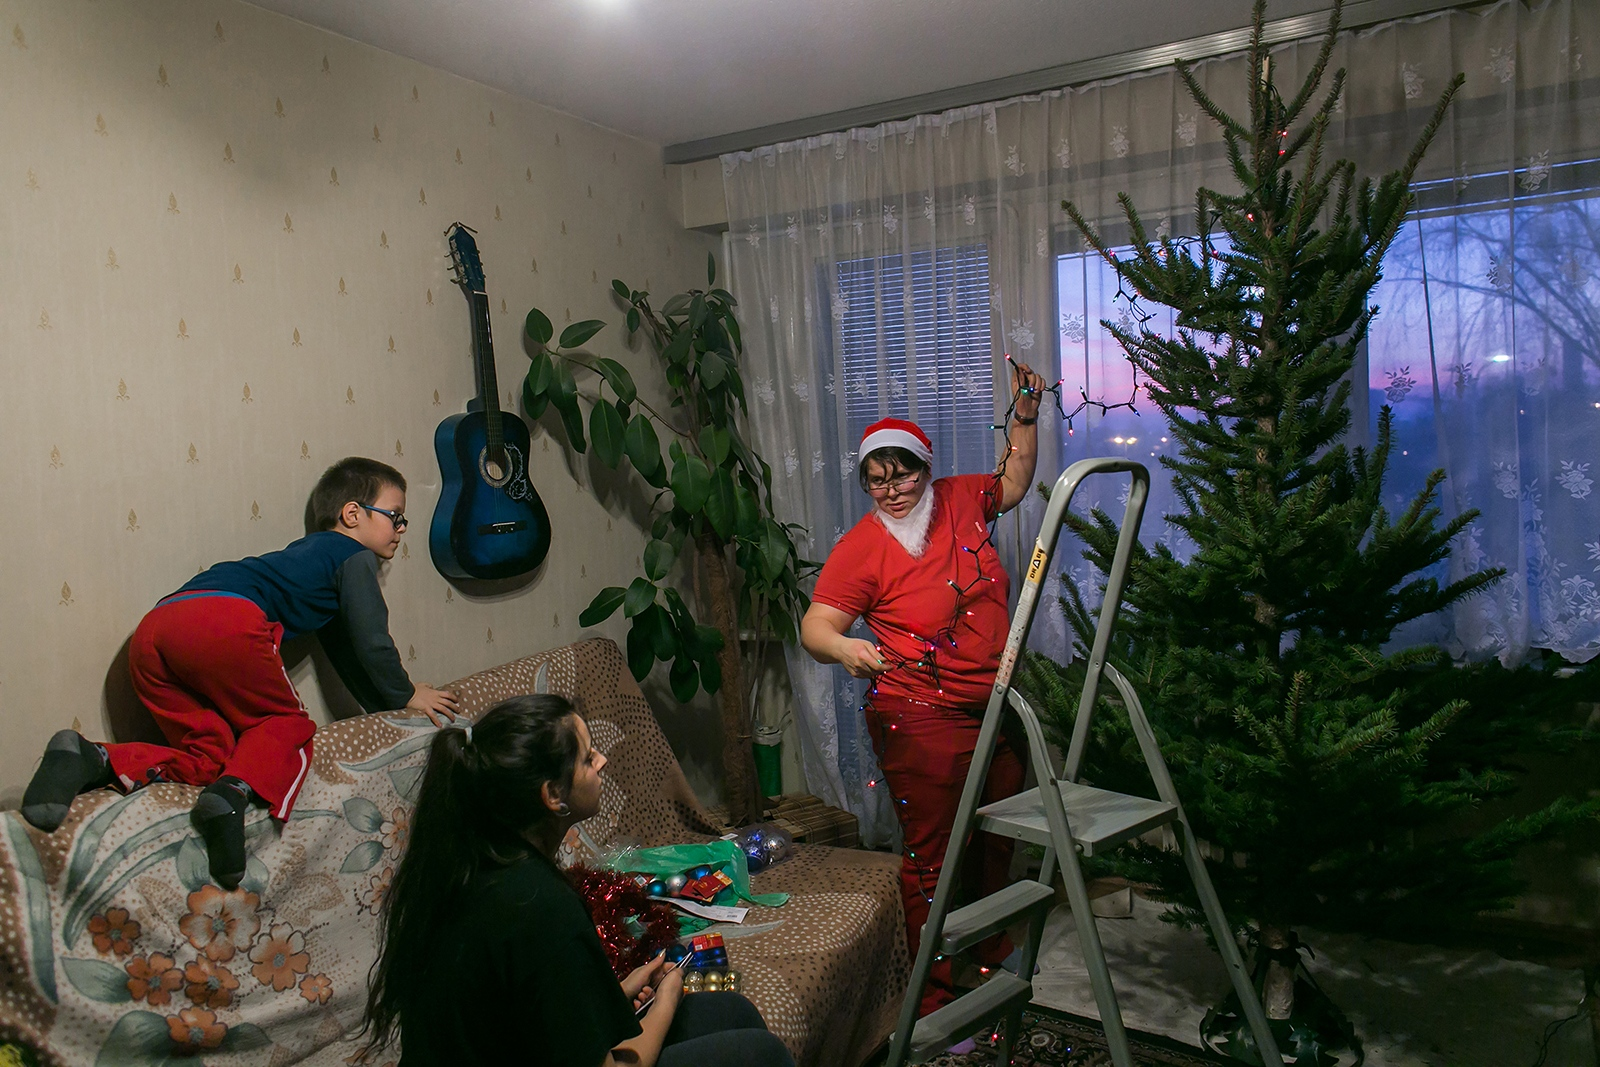 Getting ready for the first Christmas Eve in their own apartment. Antek moved out from his grandparents' home and is living permanently with the girls for the first time. (Featured: Antek, Natalia and Honorata )  Kalisz, Poland 2015